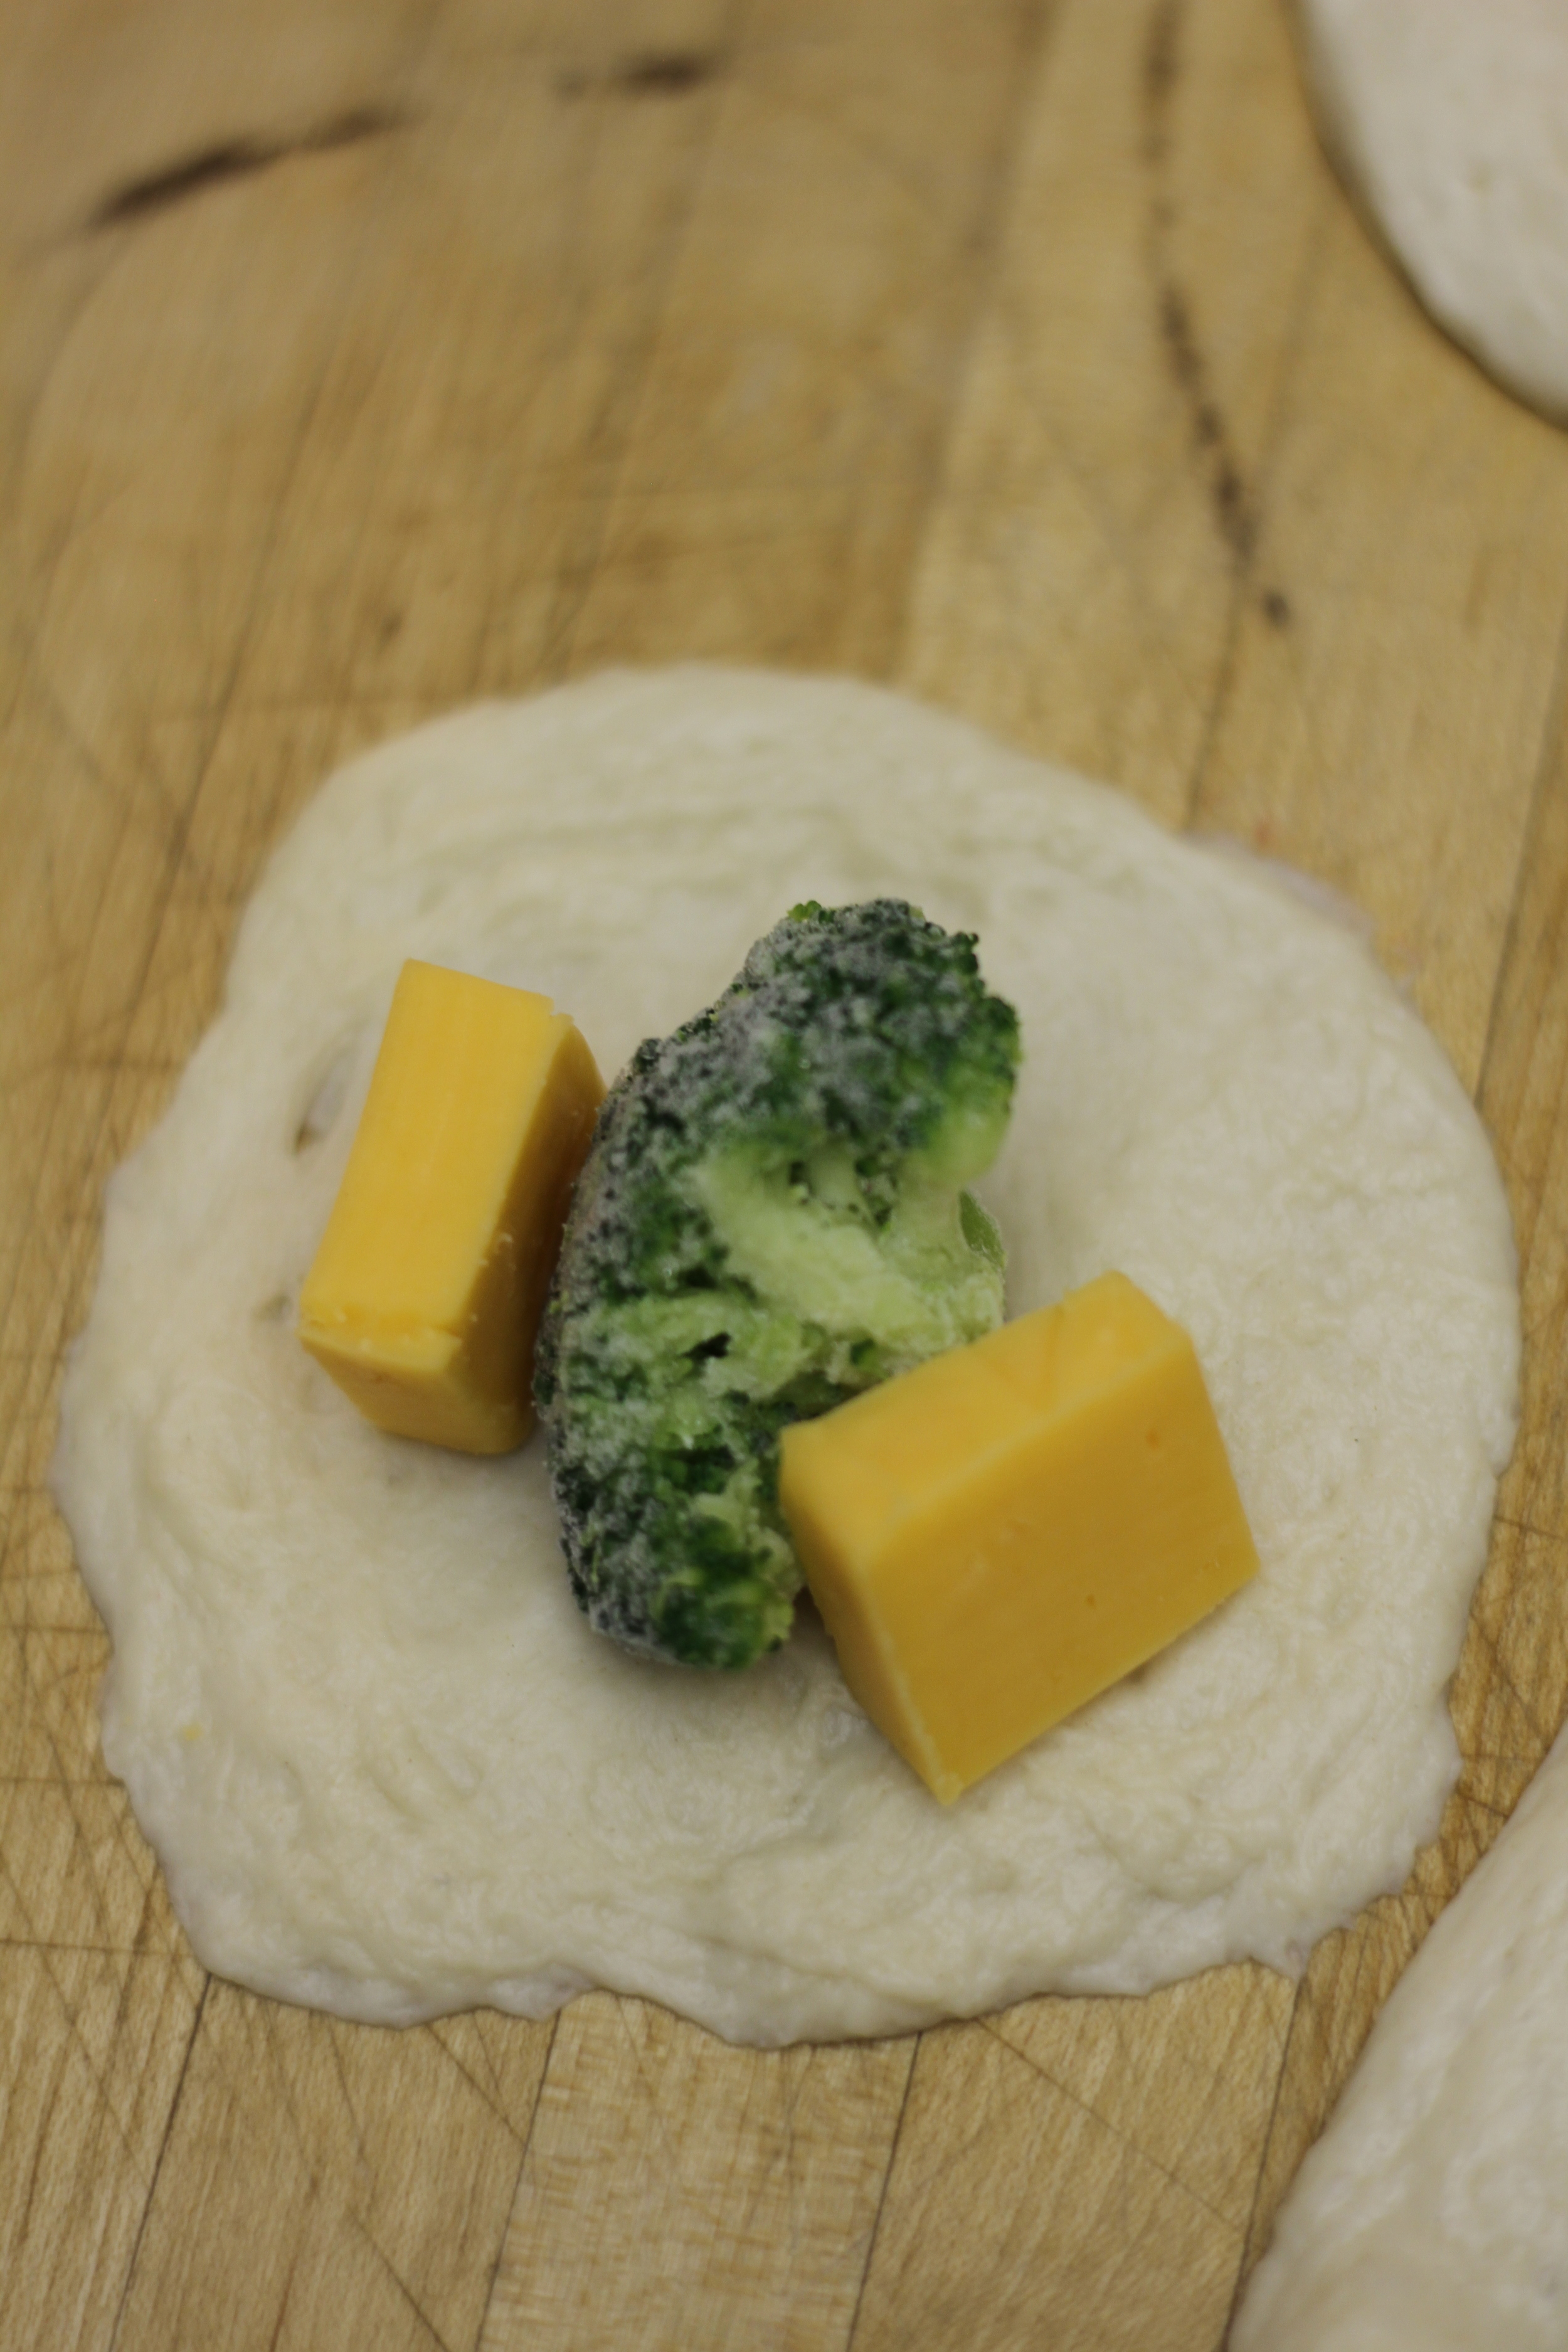 Broccoli and cheese filling for your bites.